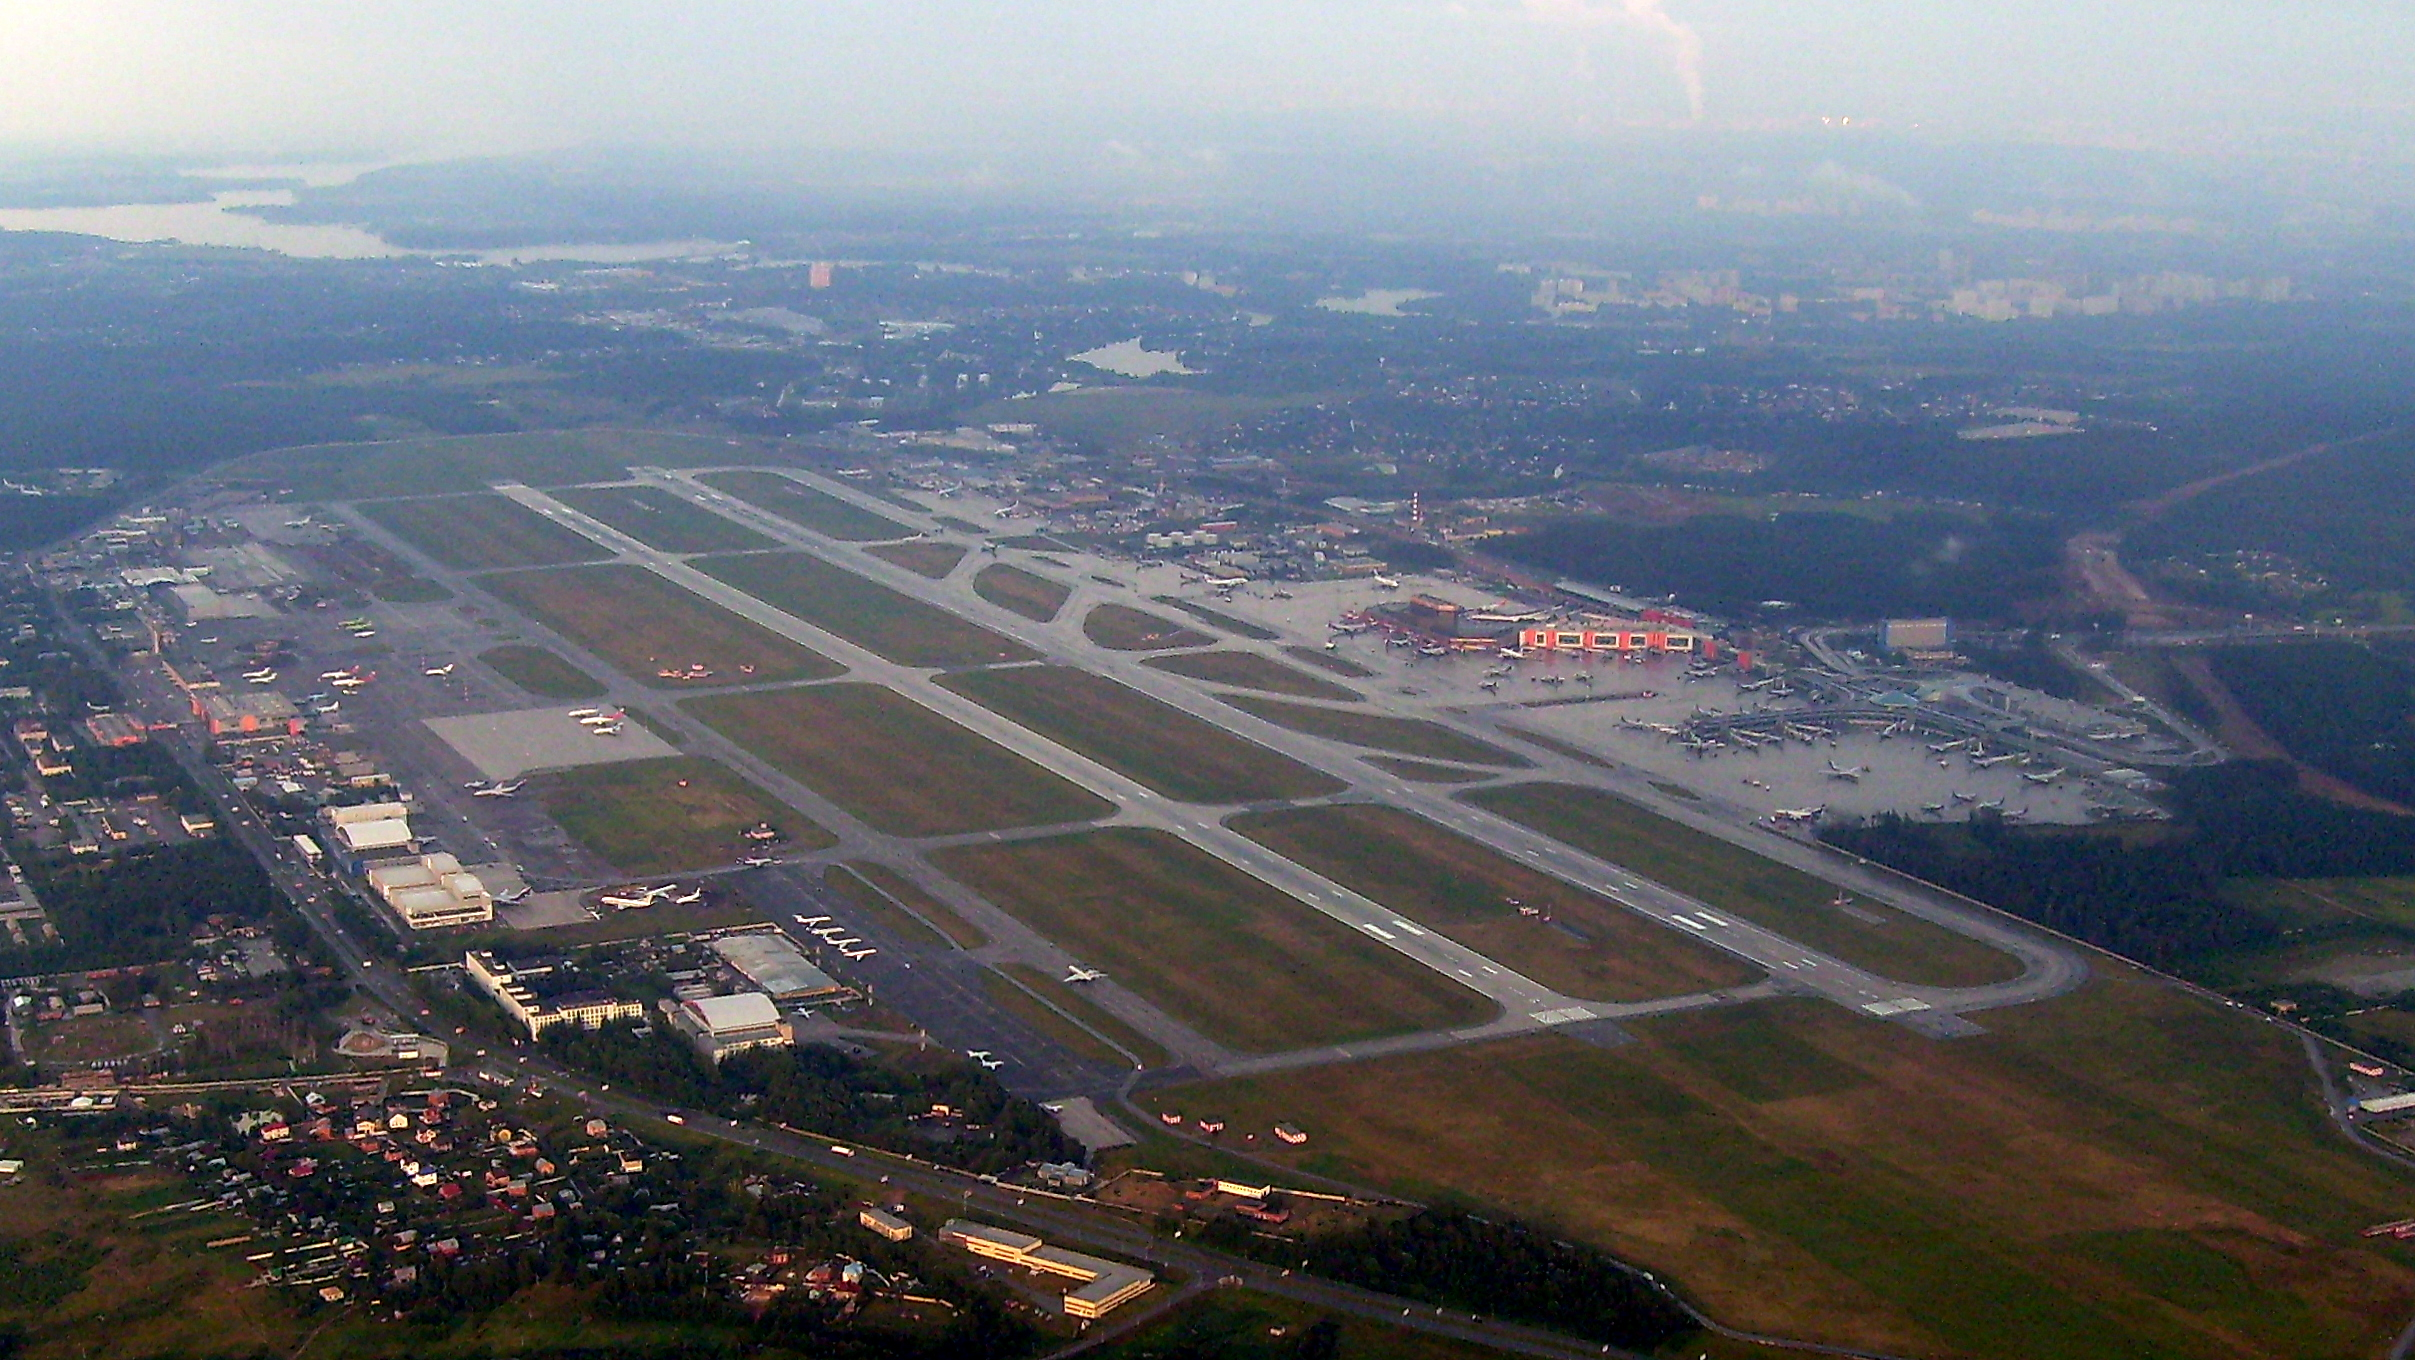 http://upload.wikimedia.org/wikipedia/commons/c/cd/Sheremetyevo_view.JPG